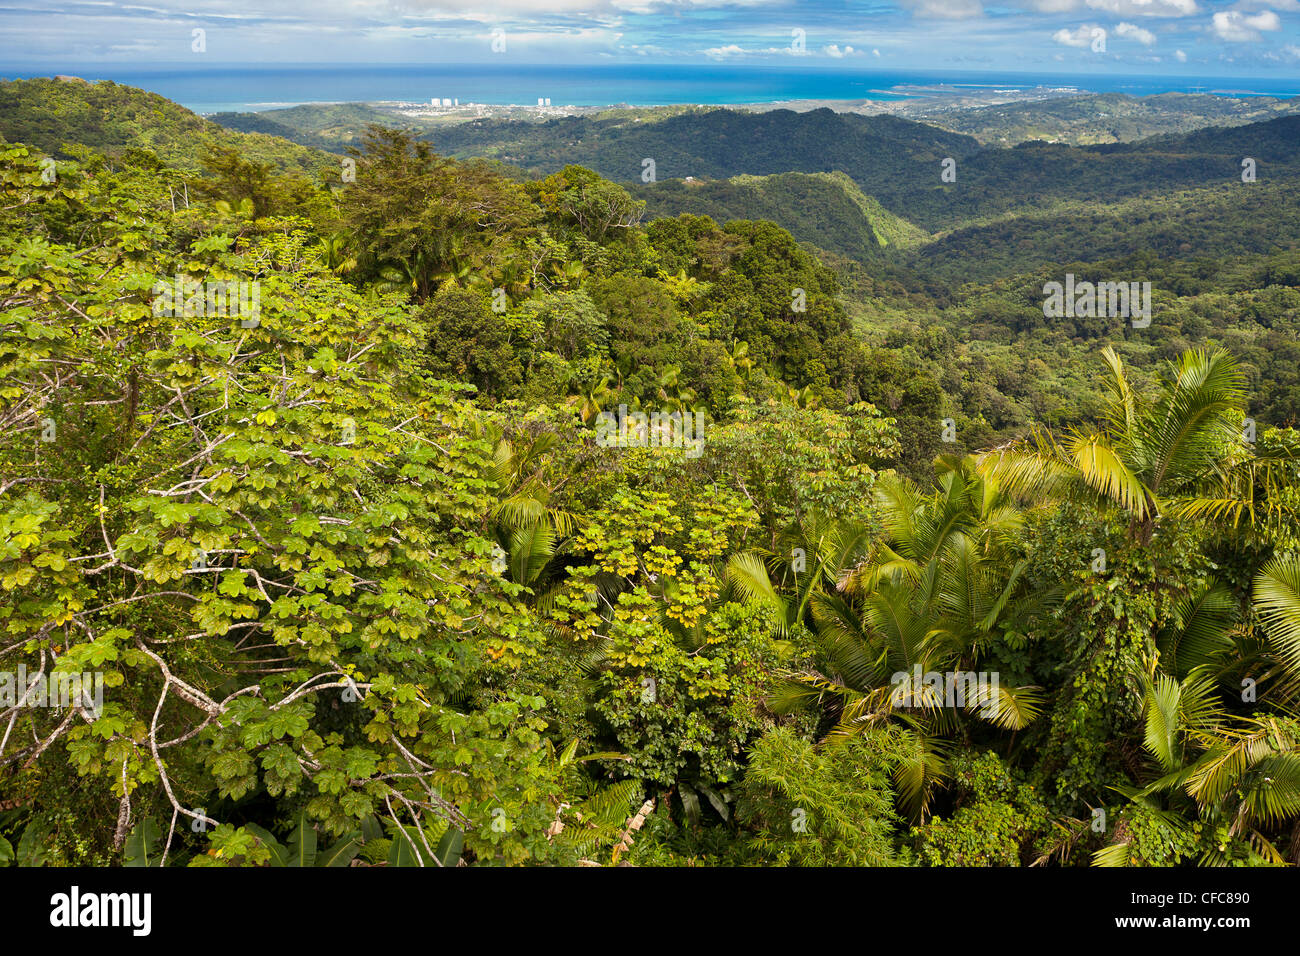 EL YUNQUE NATIONAL FOREST, PUERTO RICO - Rain forest jungle canopy landscape and coast near Luquillo - Stock Image